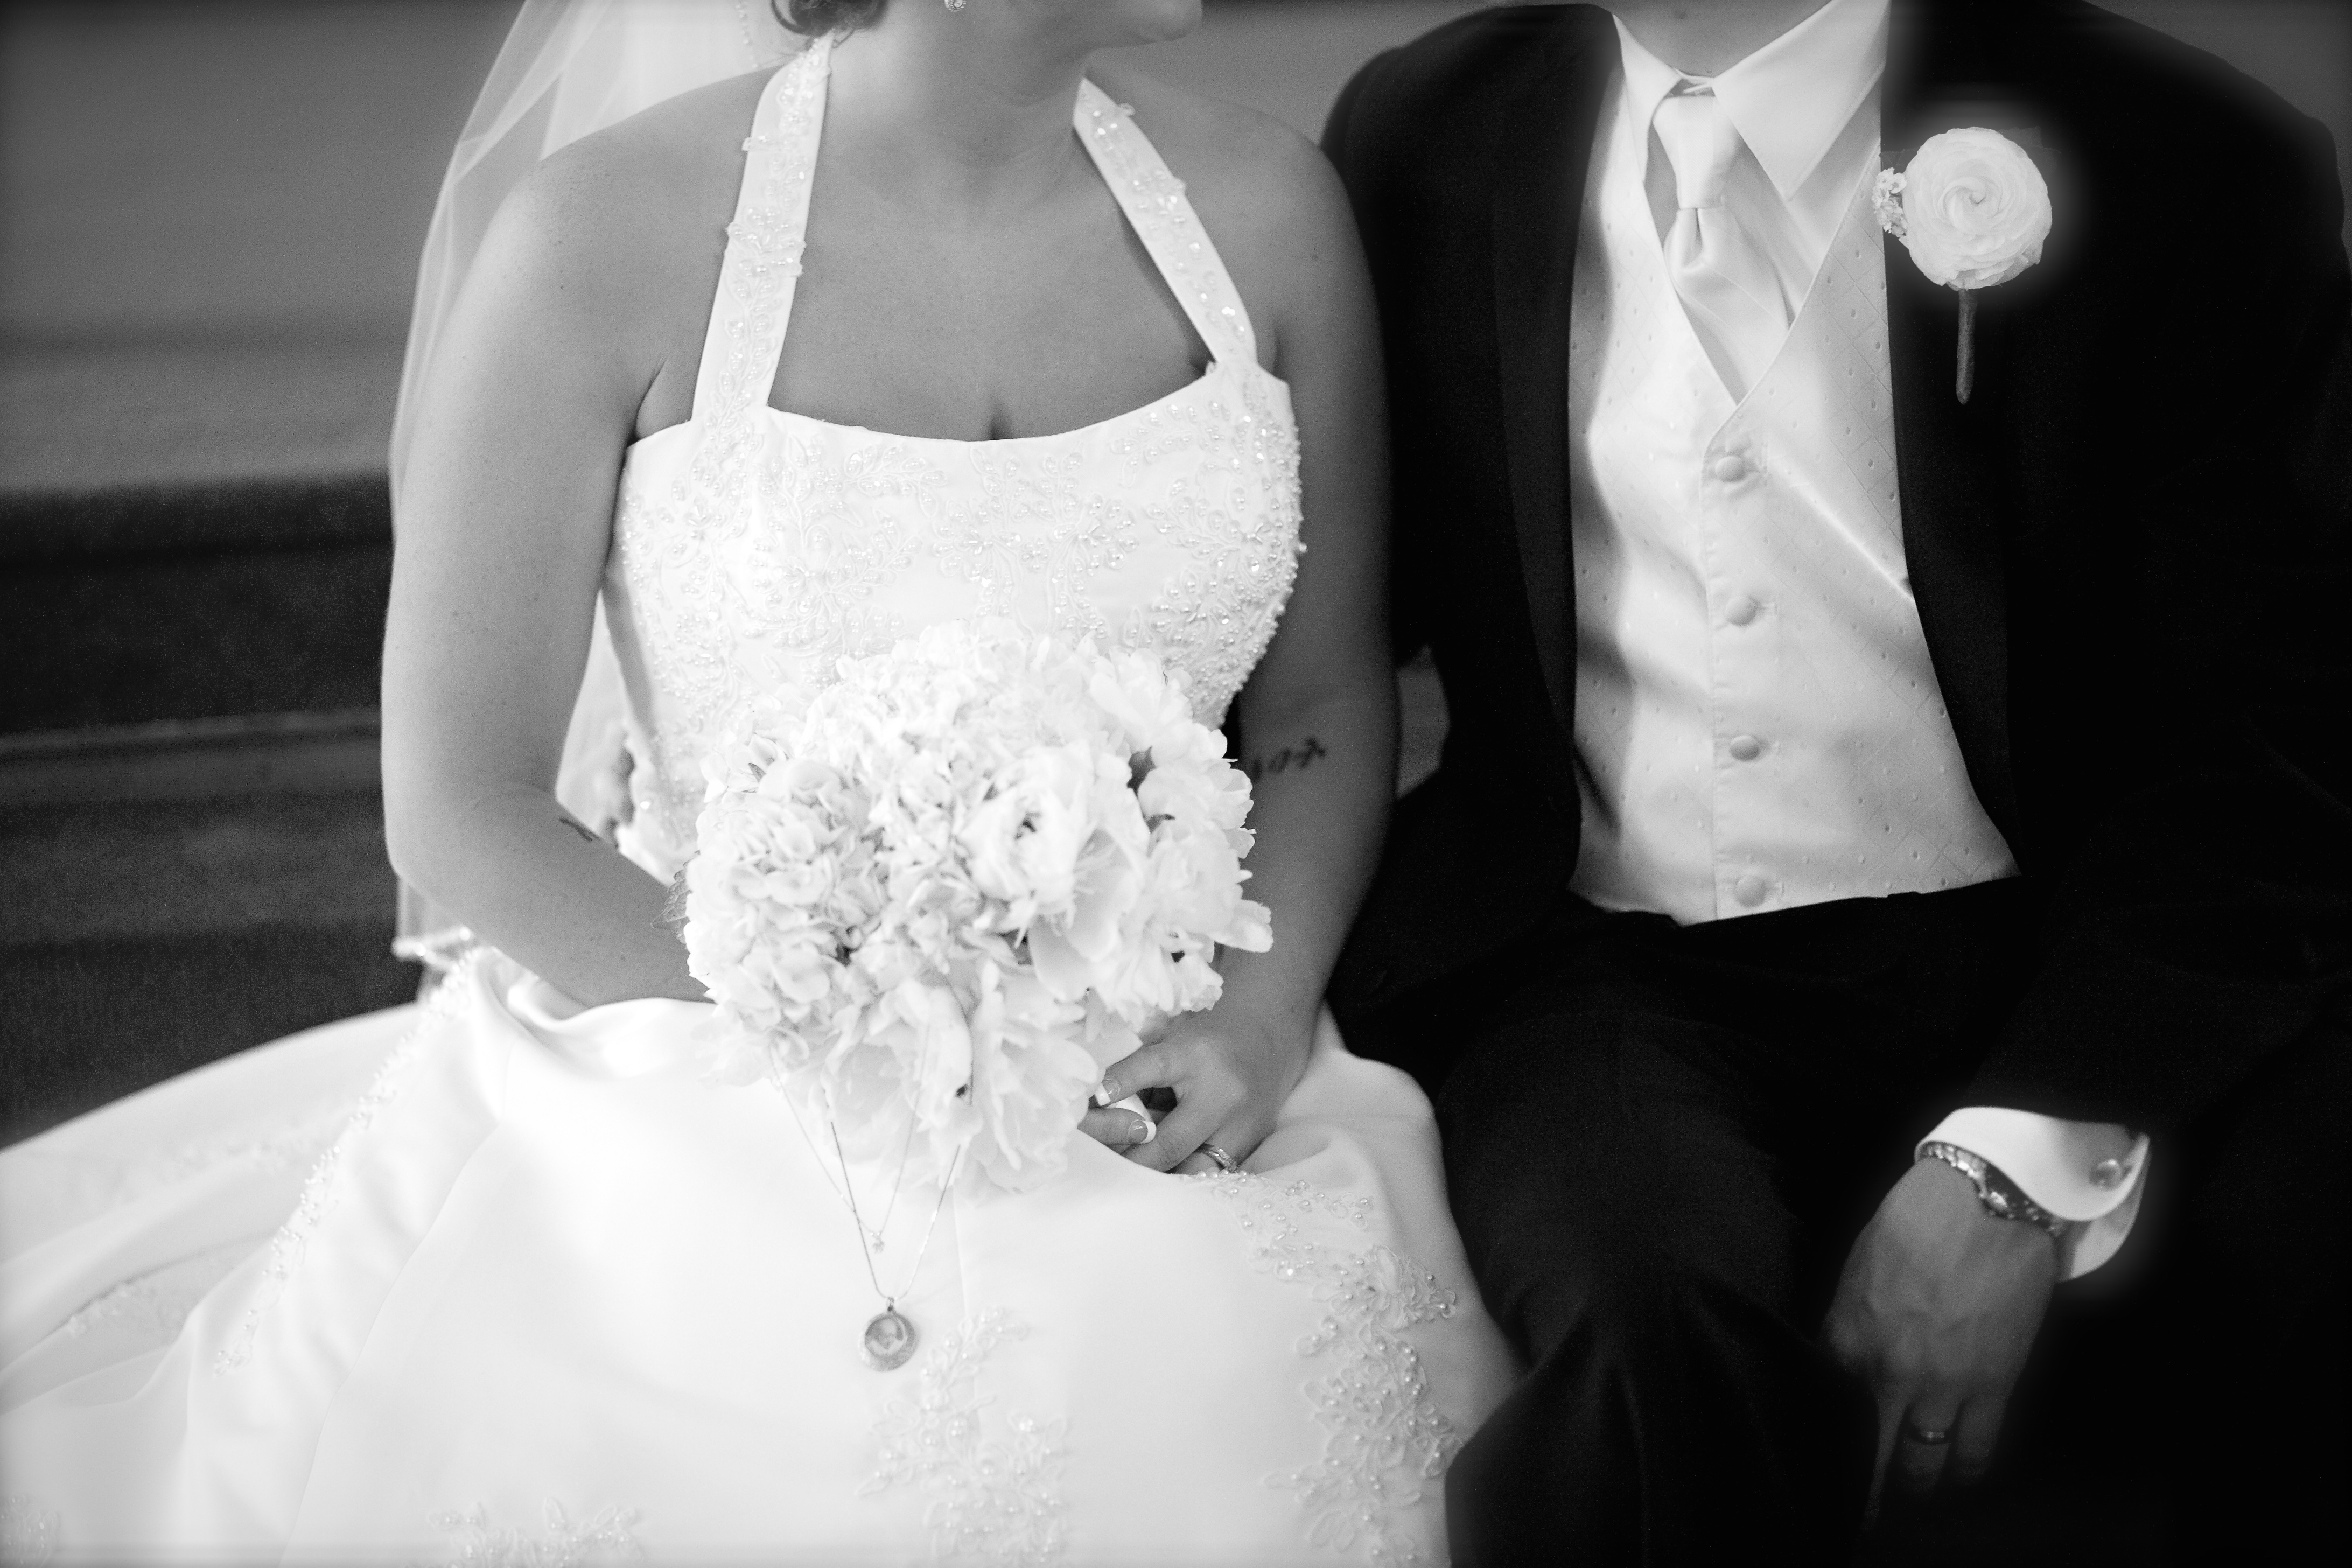 Marriage and Cancer: 10 Ways to Maintain Your Relationship